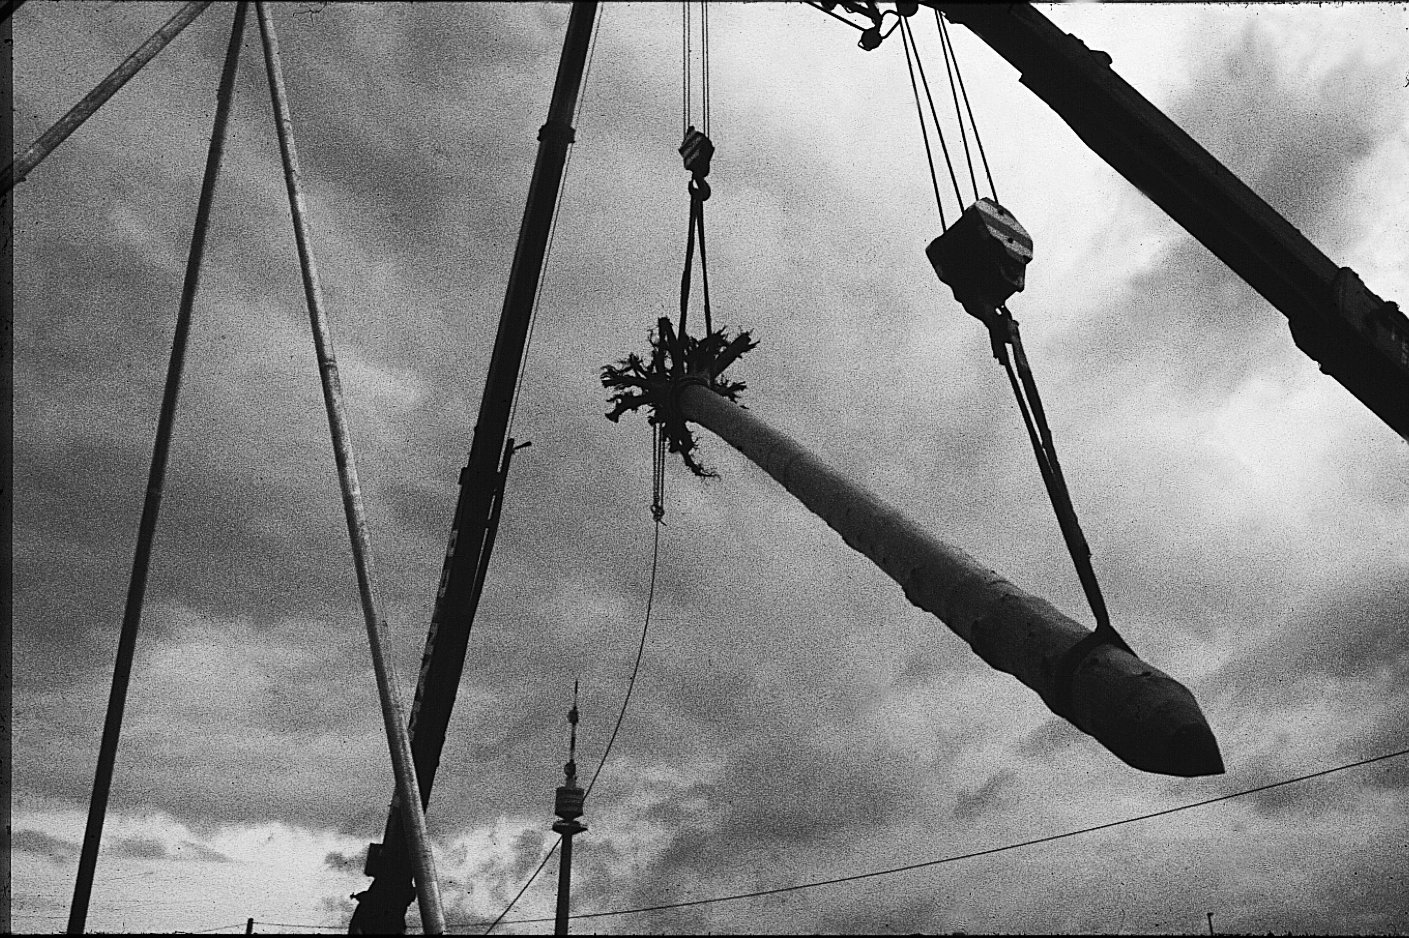 Building the Hanging Tree by Herman Prigann, 1985